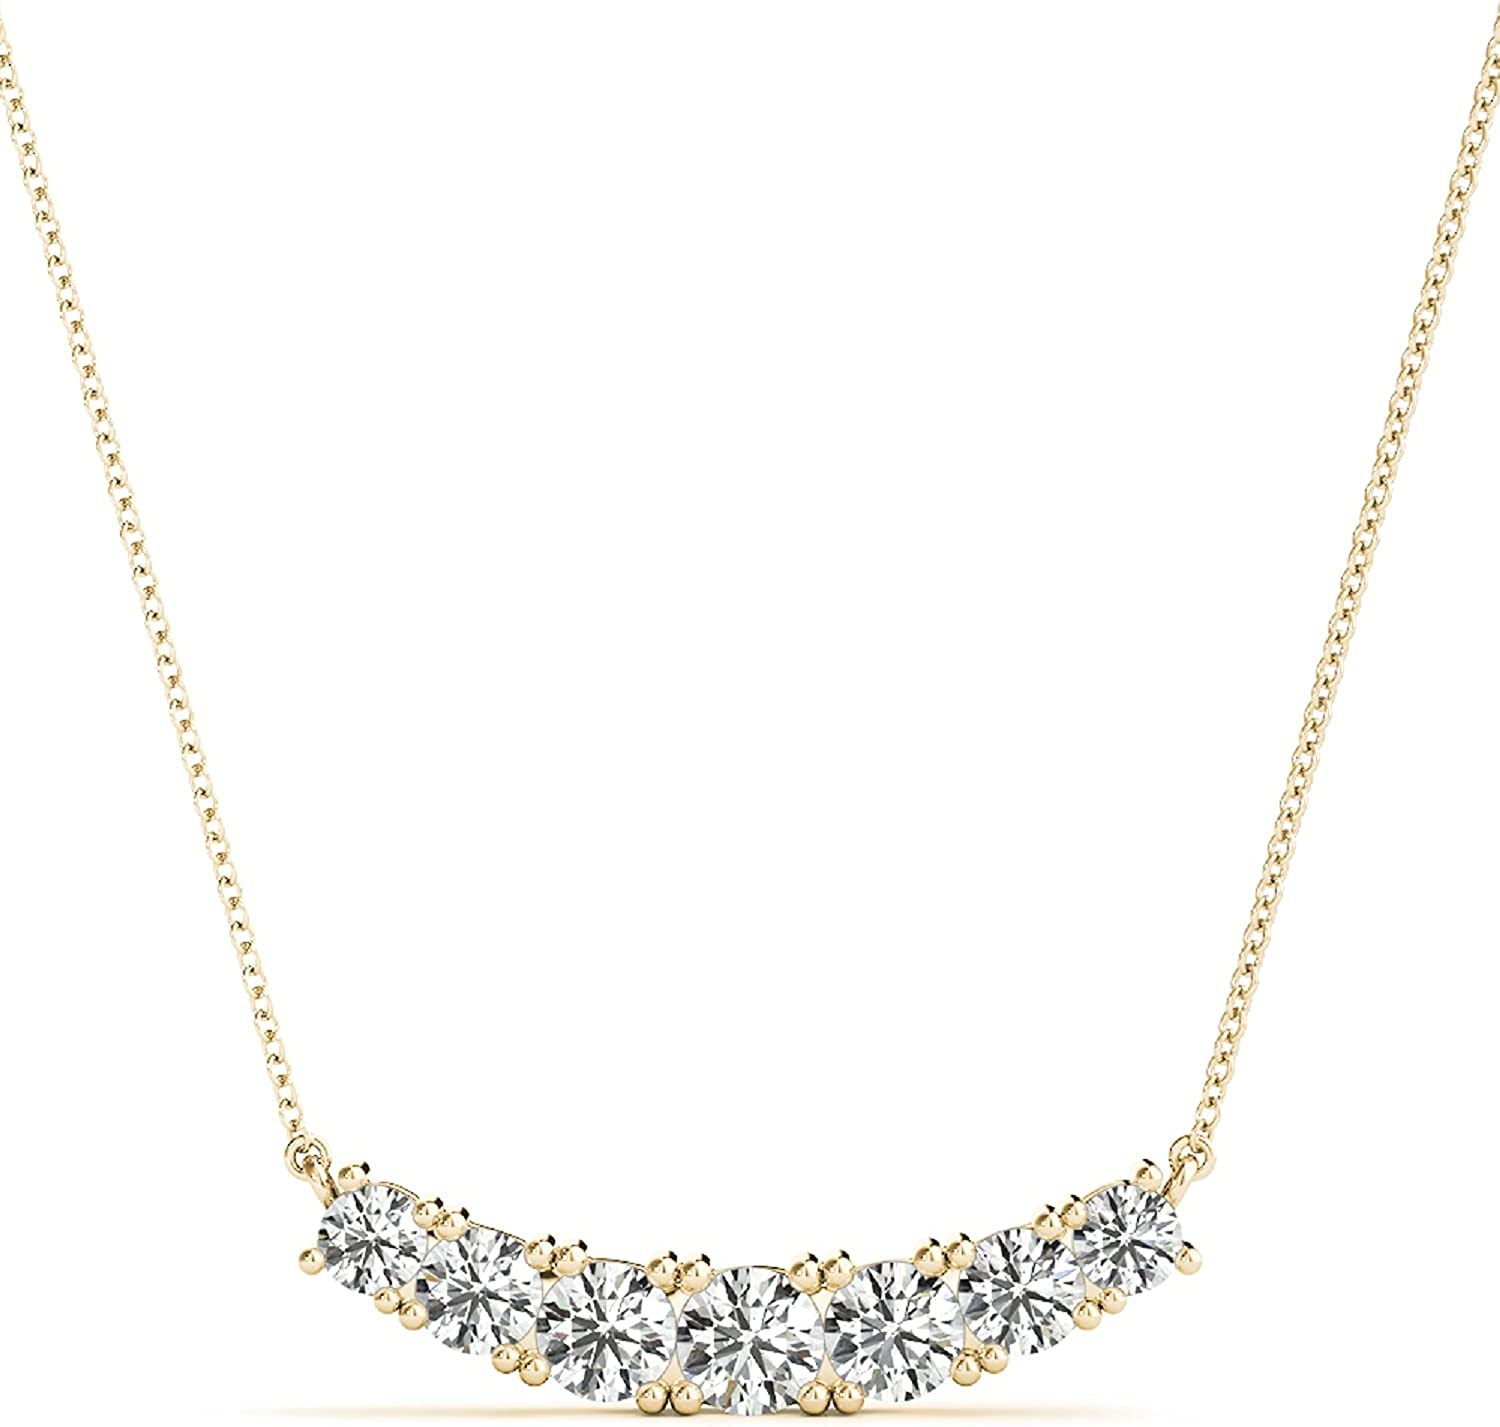 Diamond Necklaces For Women 0.50 Carat 7 Stone Round Natural Diamond Classic Handmade Necklace 10K Rose White Yellow Gold Anniversary Birthday Best Gift Jewelry Collection